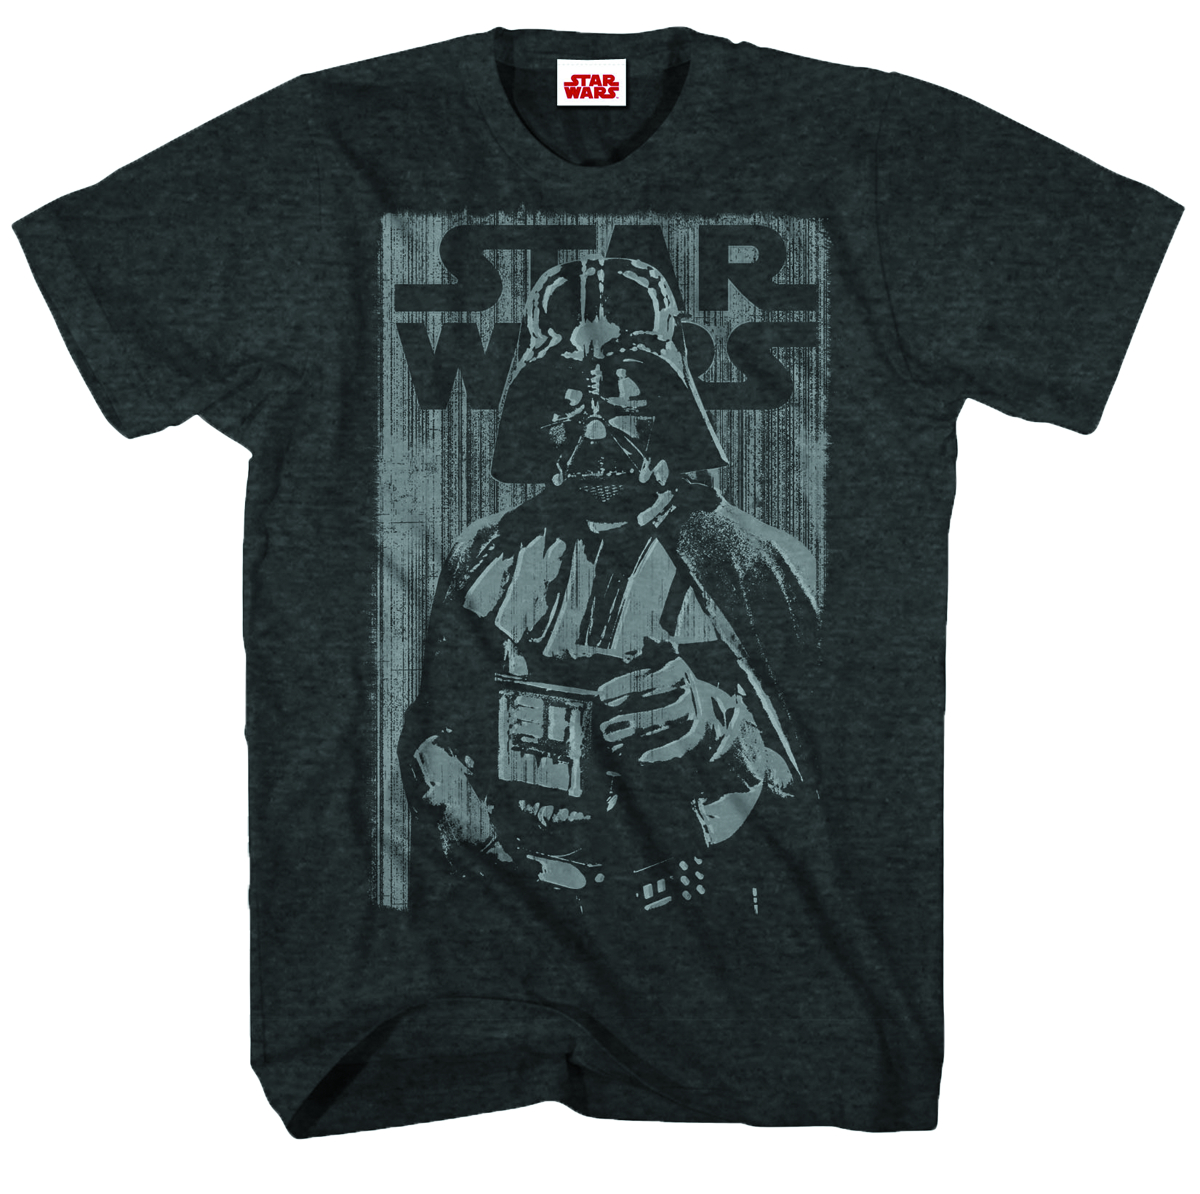 STAR WARS COOL AS ME PX BLK HEATHER T/S LG